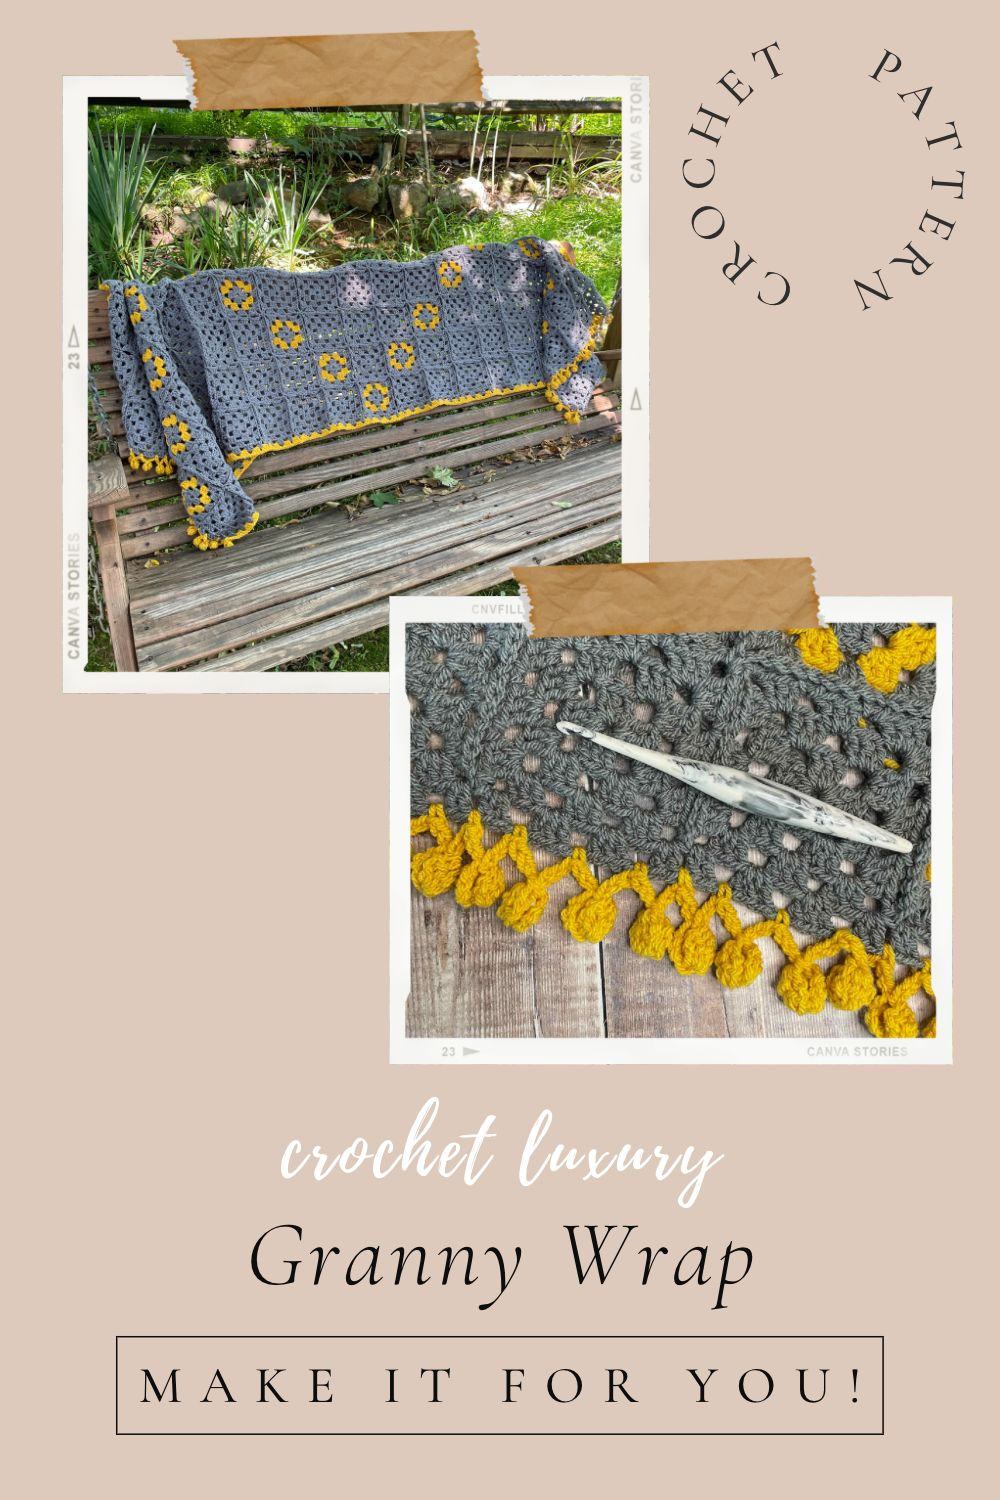 Granny Wrap Crochet Pattern available from MadameStitch